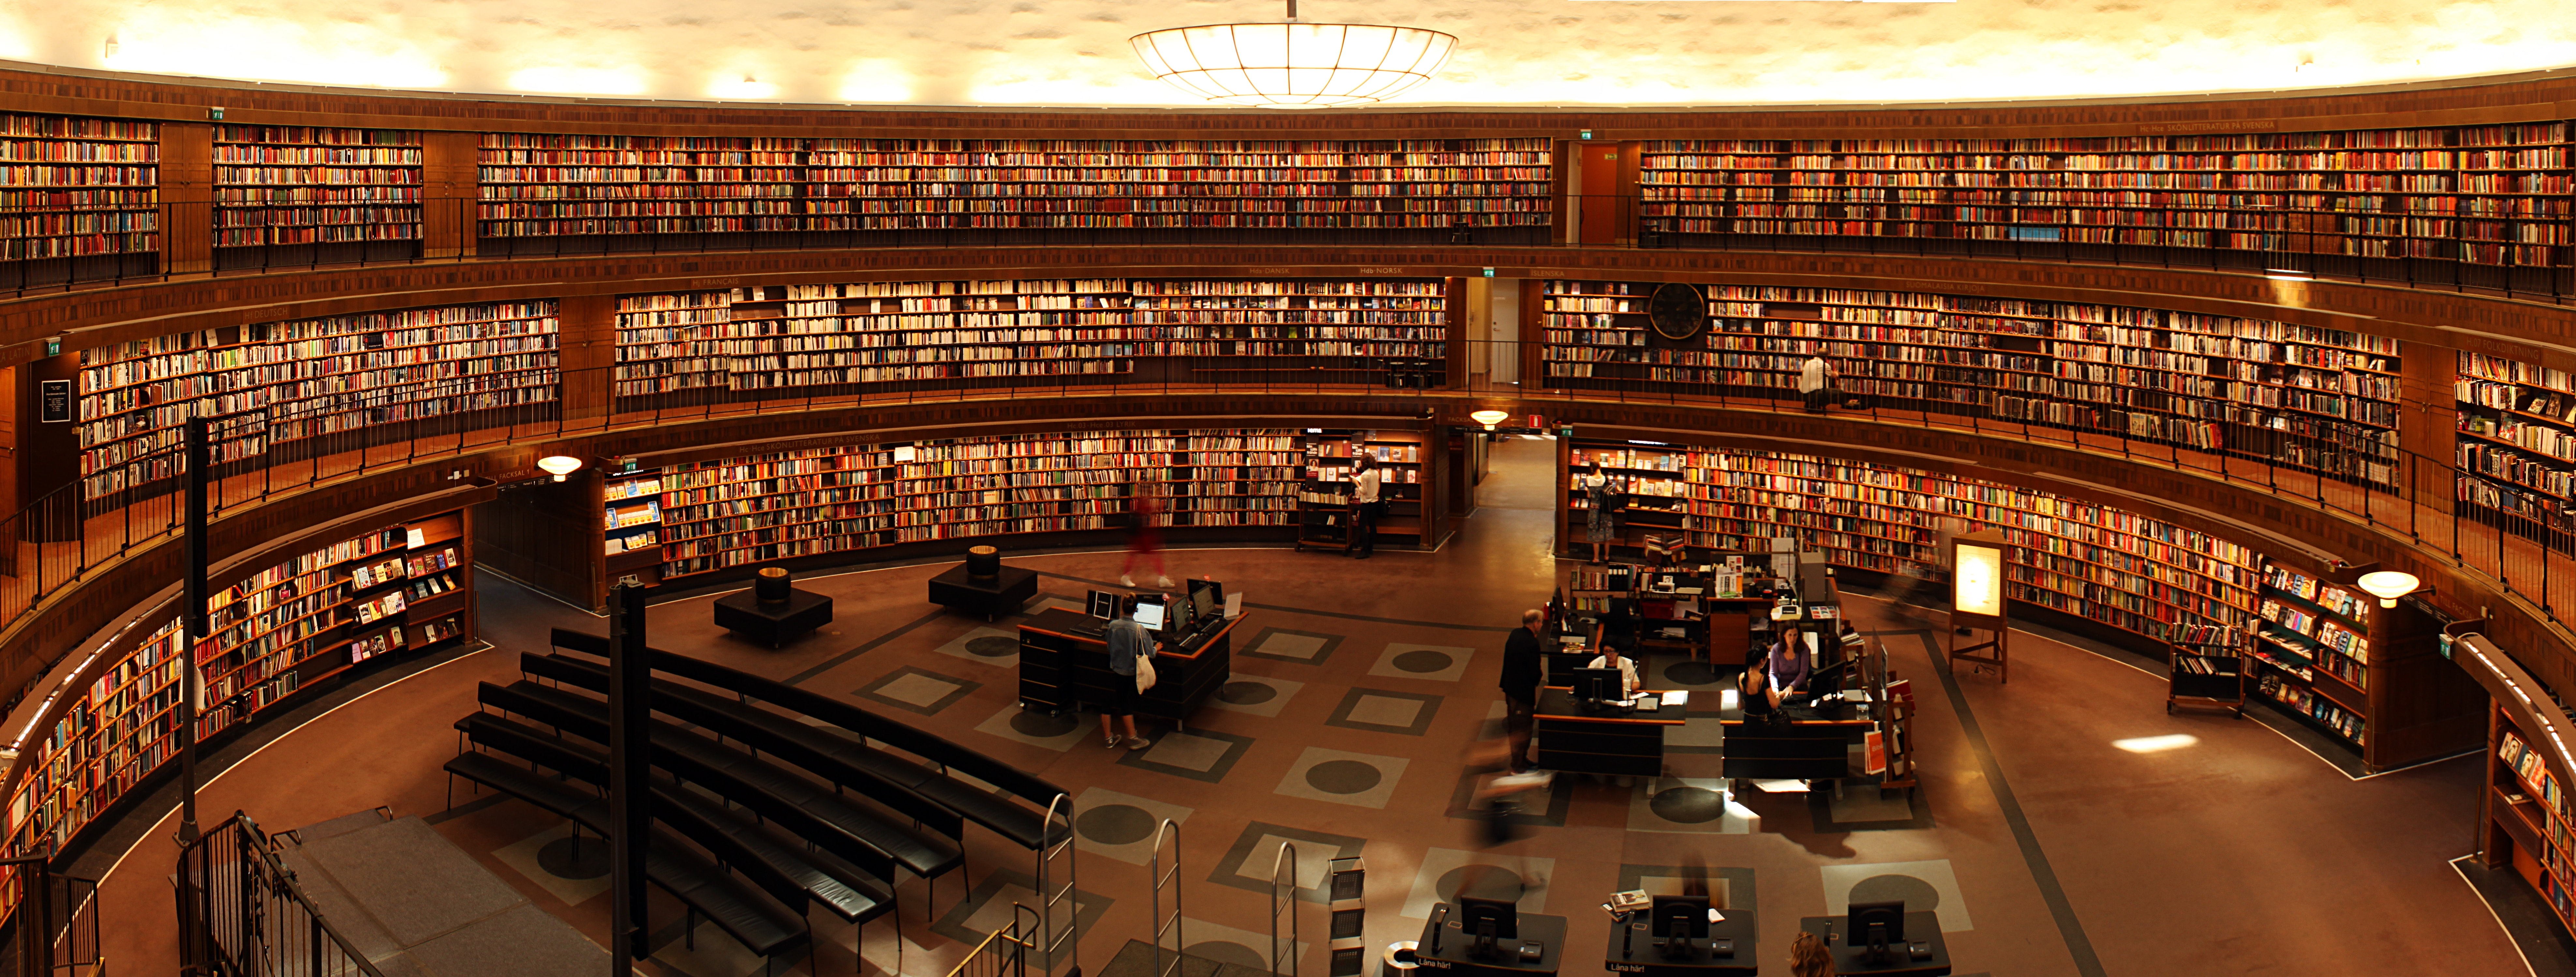 Photography Of Library Room Free Stock Photo